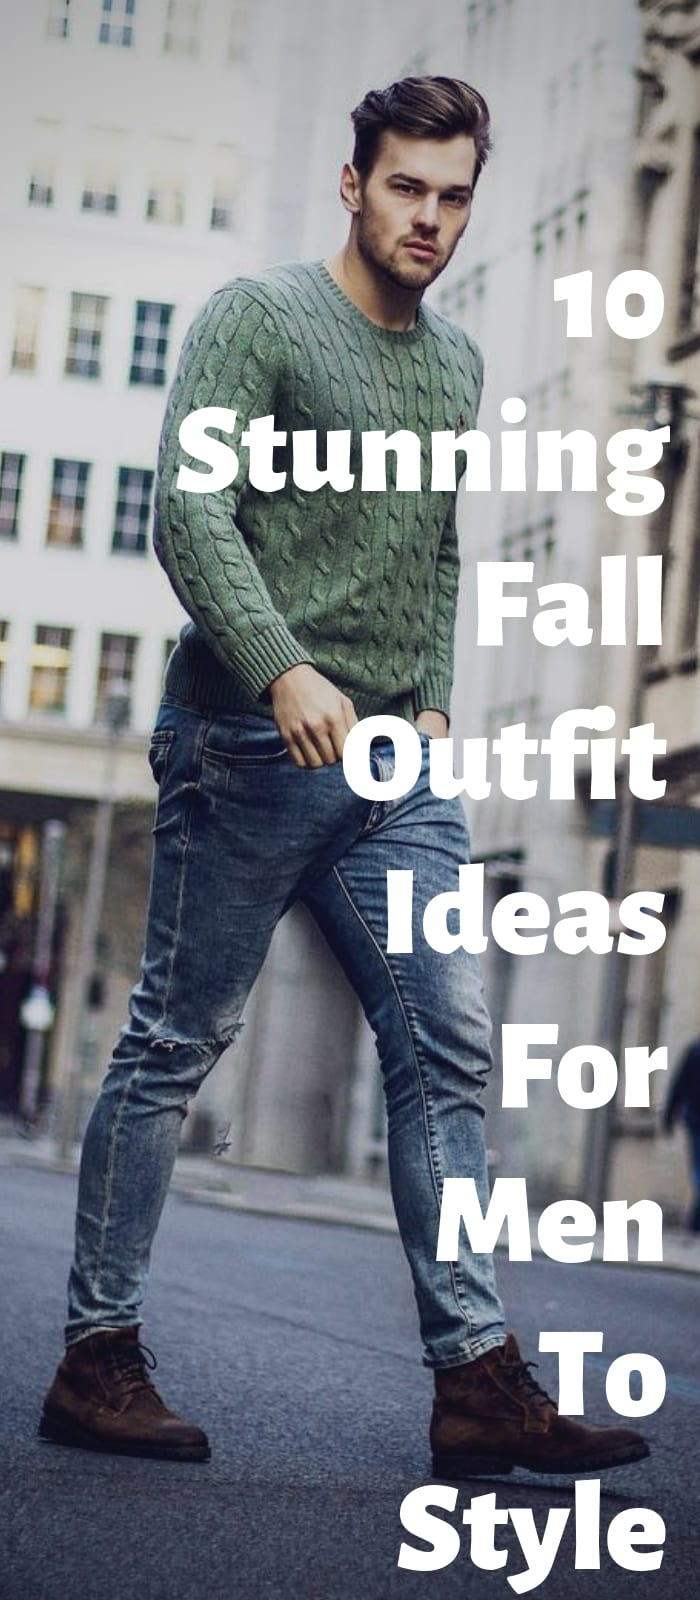 10 Latest Fall Outfit Ideas For Men This Year!